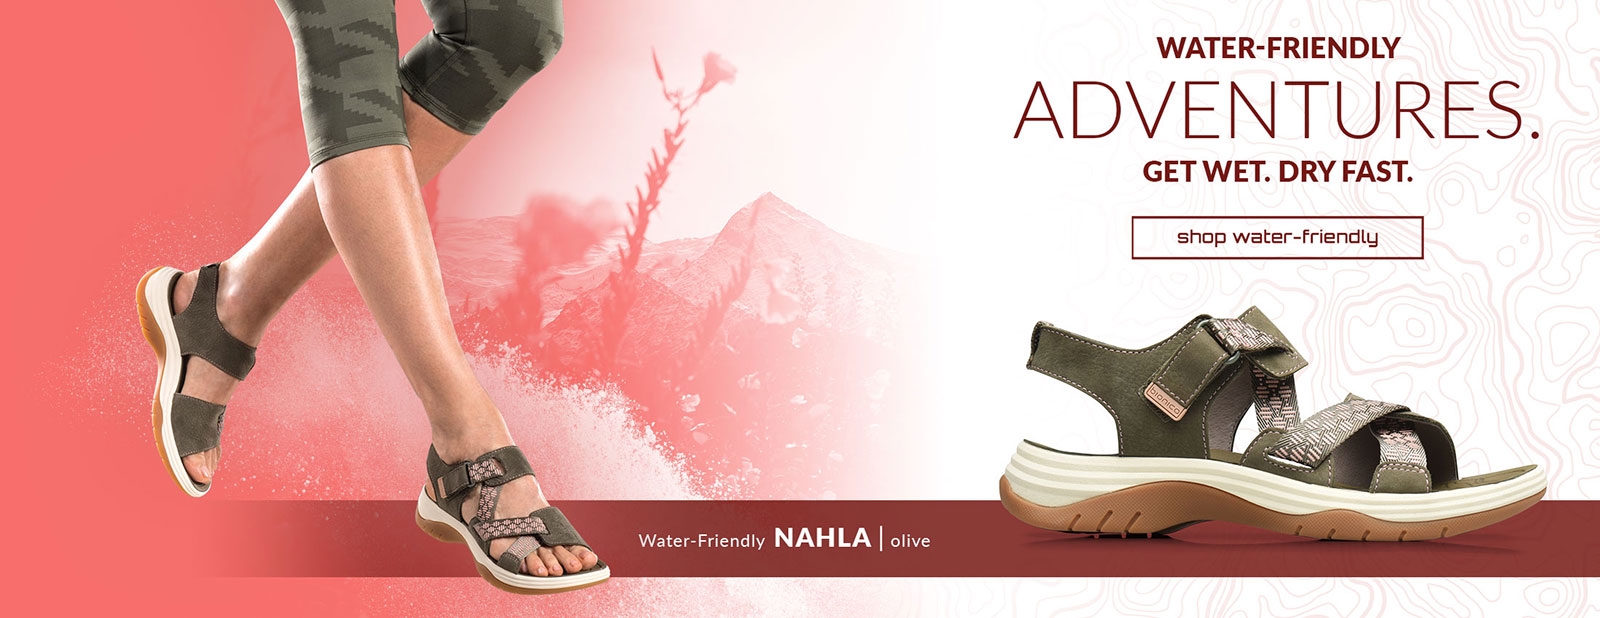 Water Friendly Adventures. Get Dry Fast. Shop Water-Friendly. Water-friendly Nahla sandal in olive. Shop Water-Friendly Sandals.